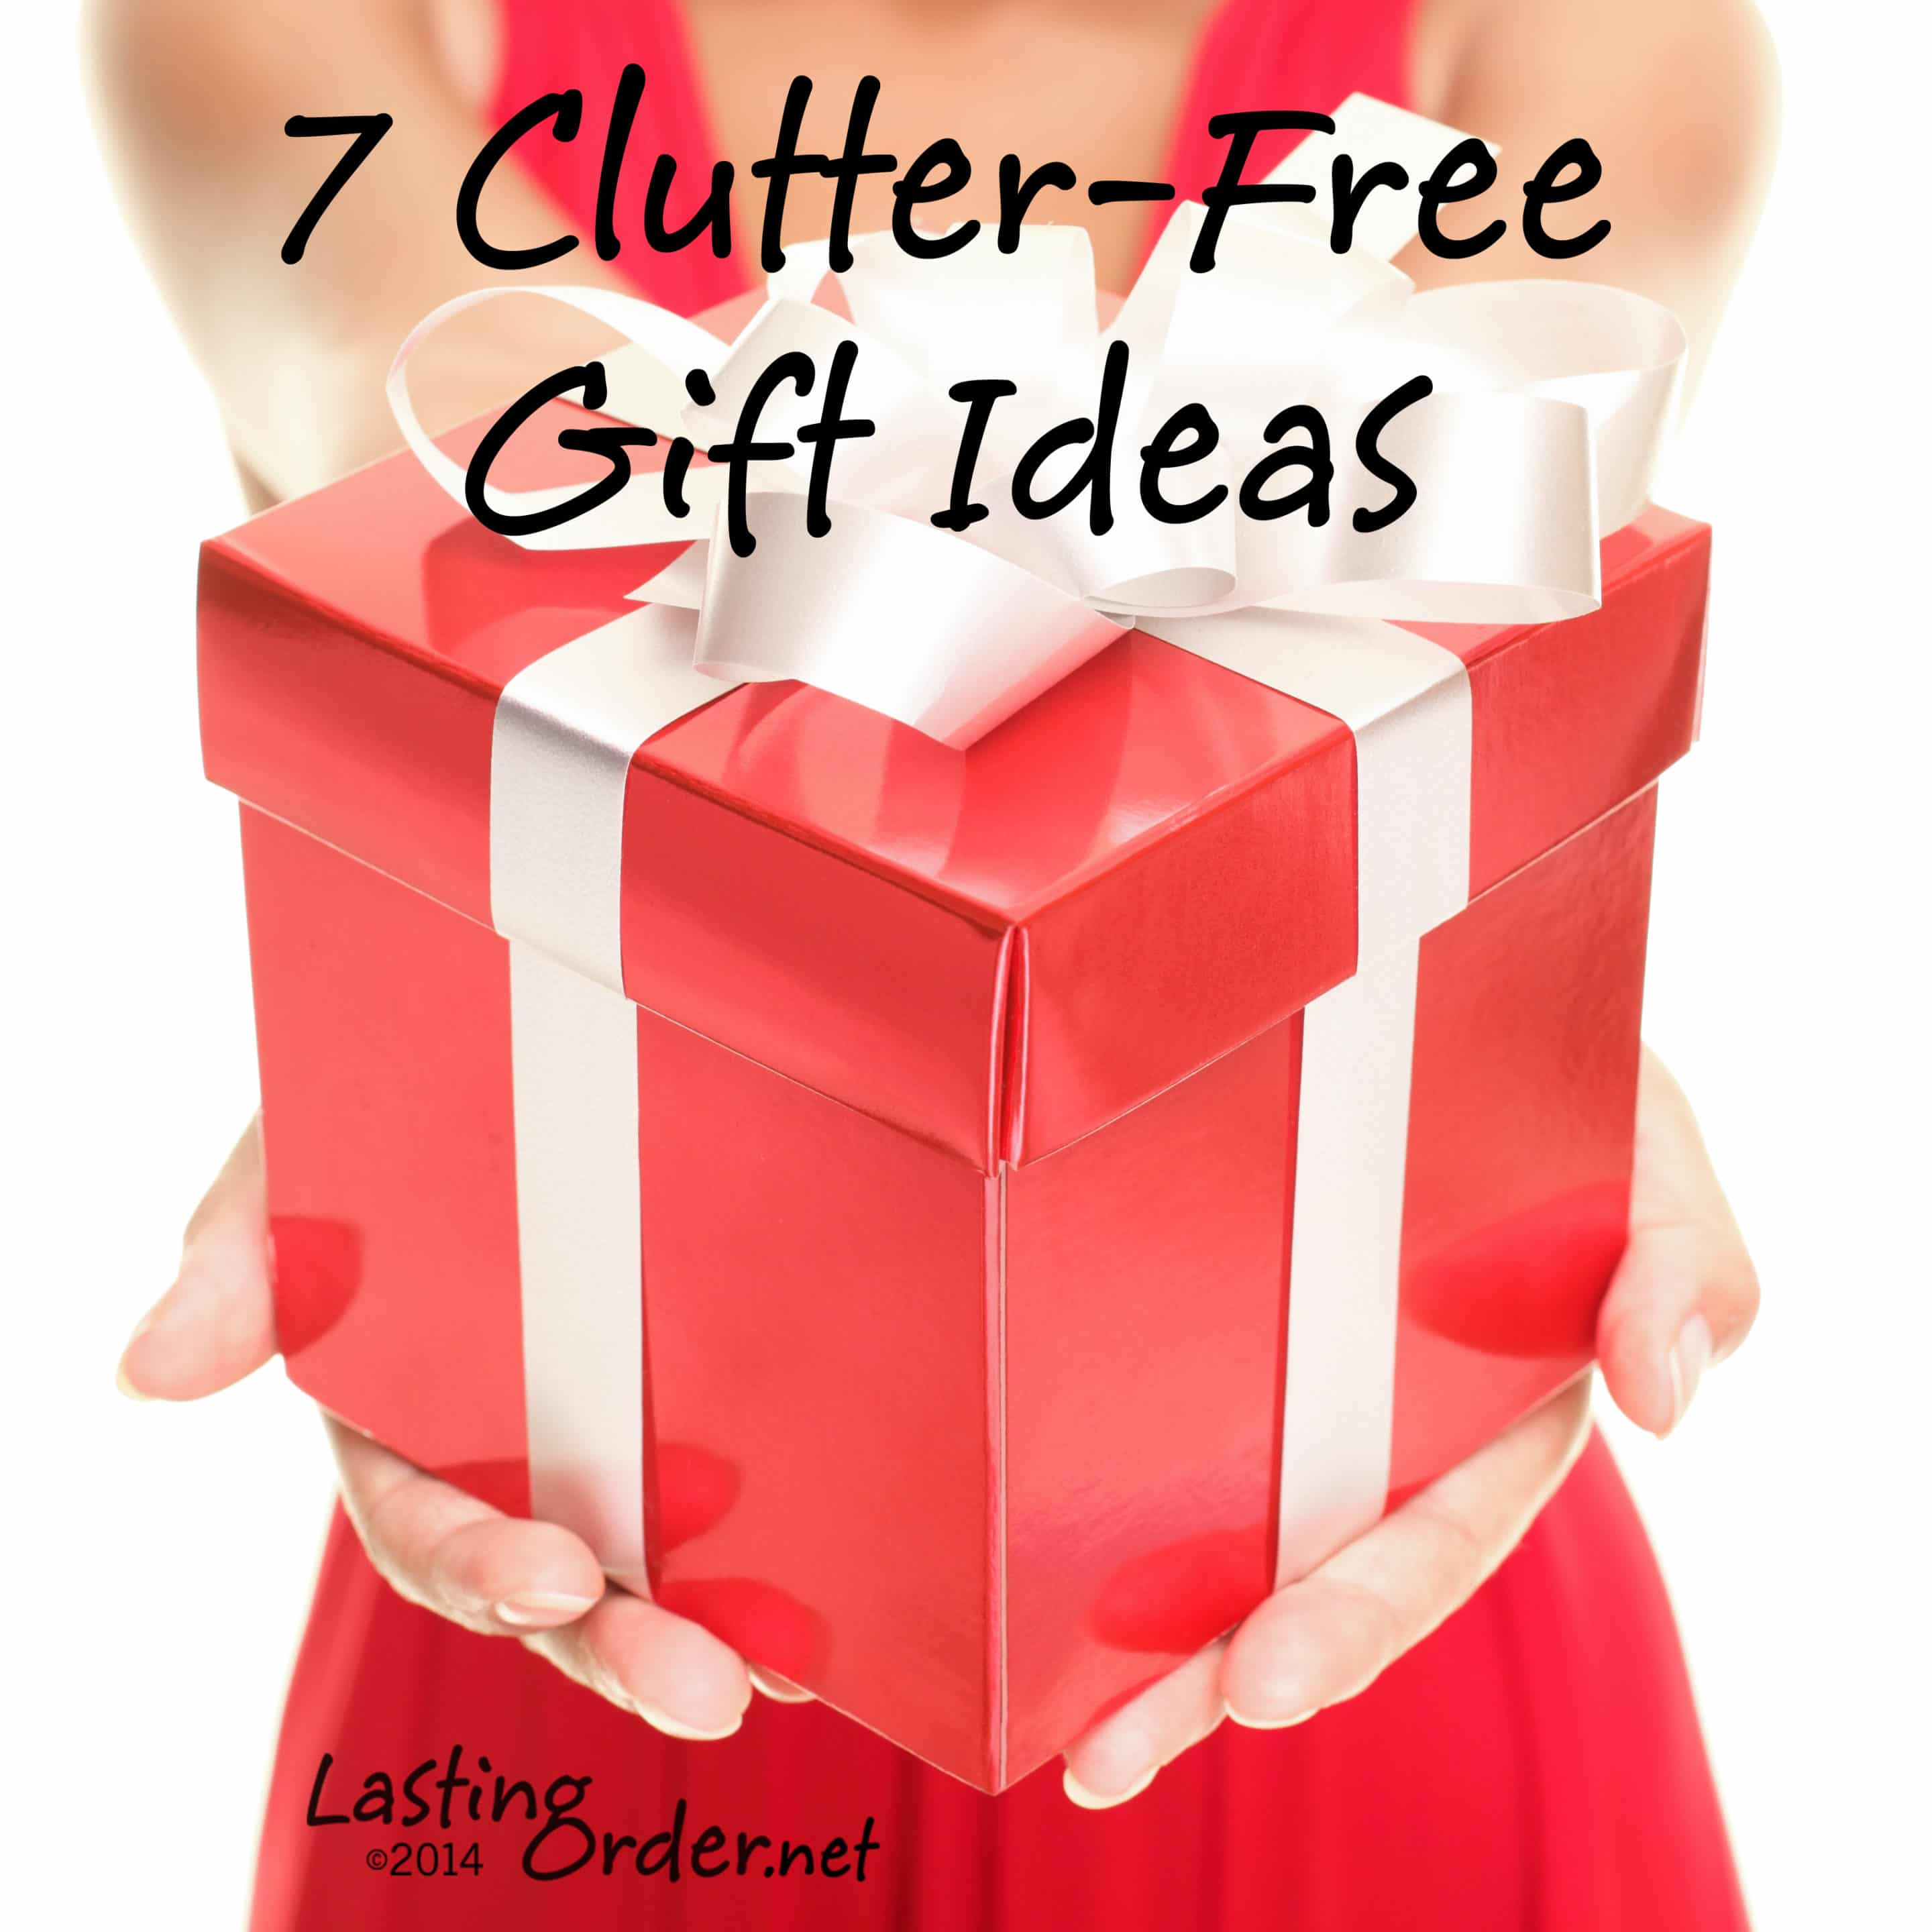 7 Clutter-Free Gift Ideas - Lasting Order